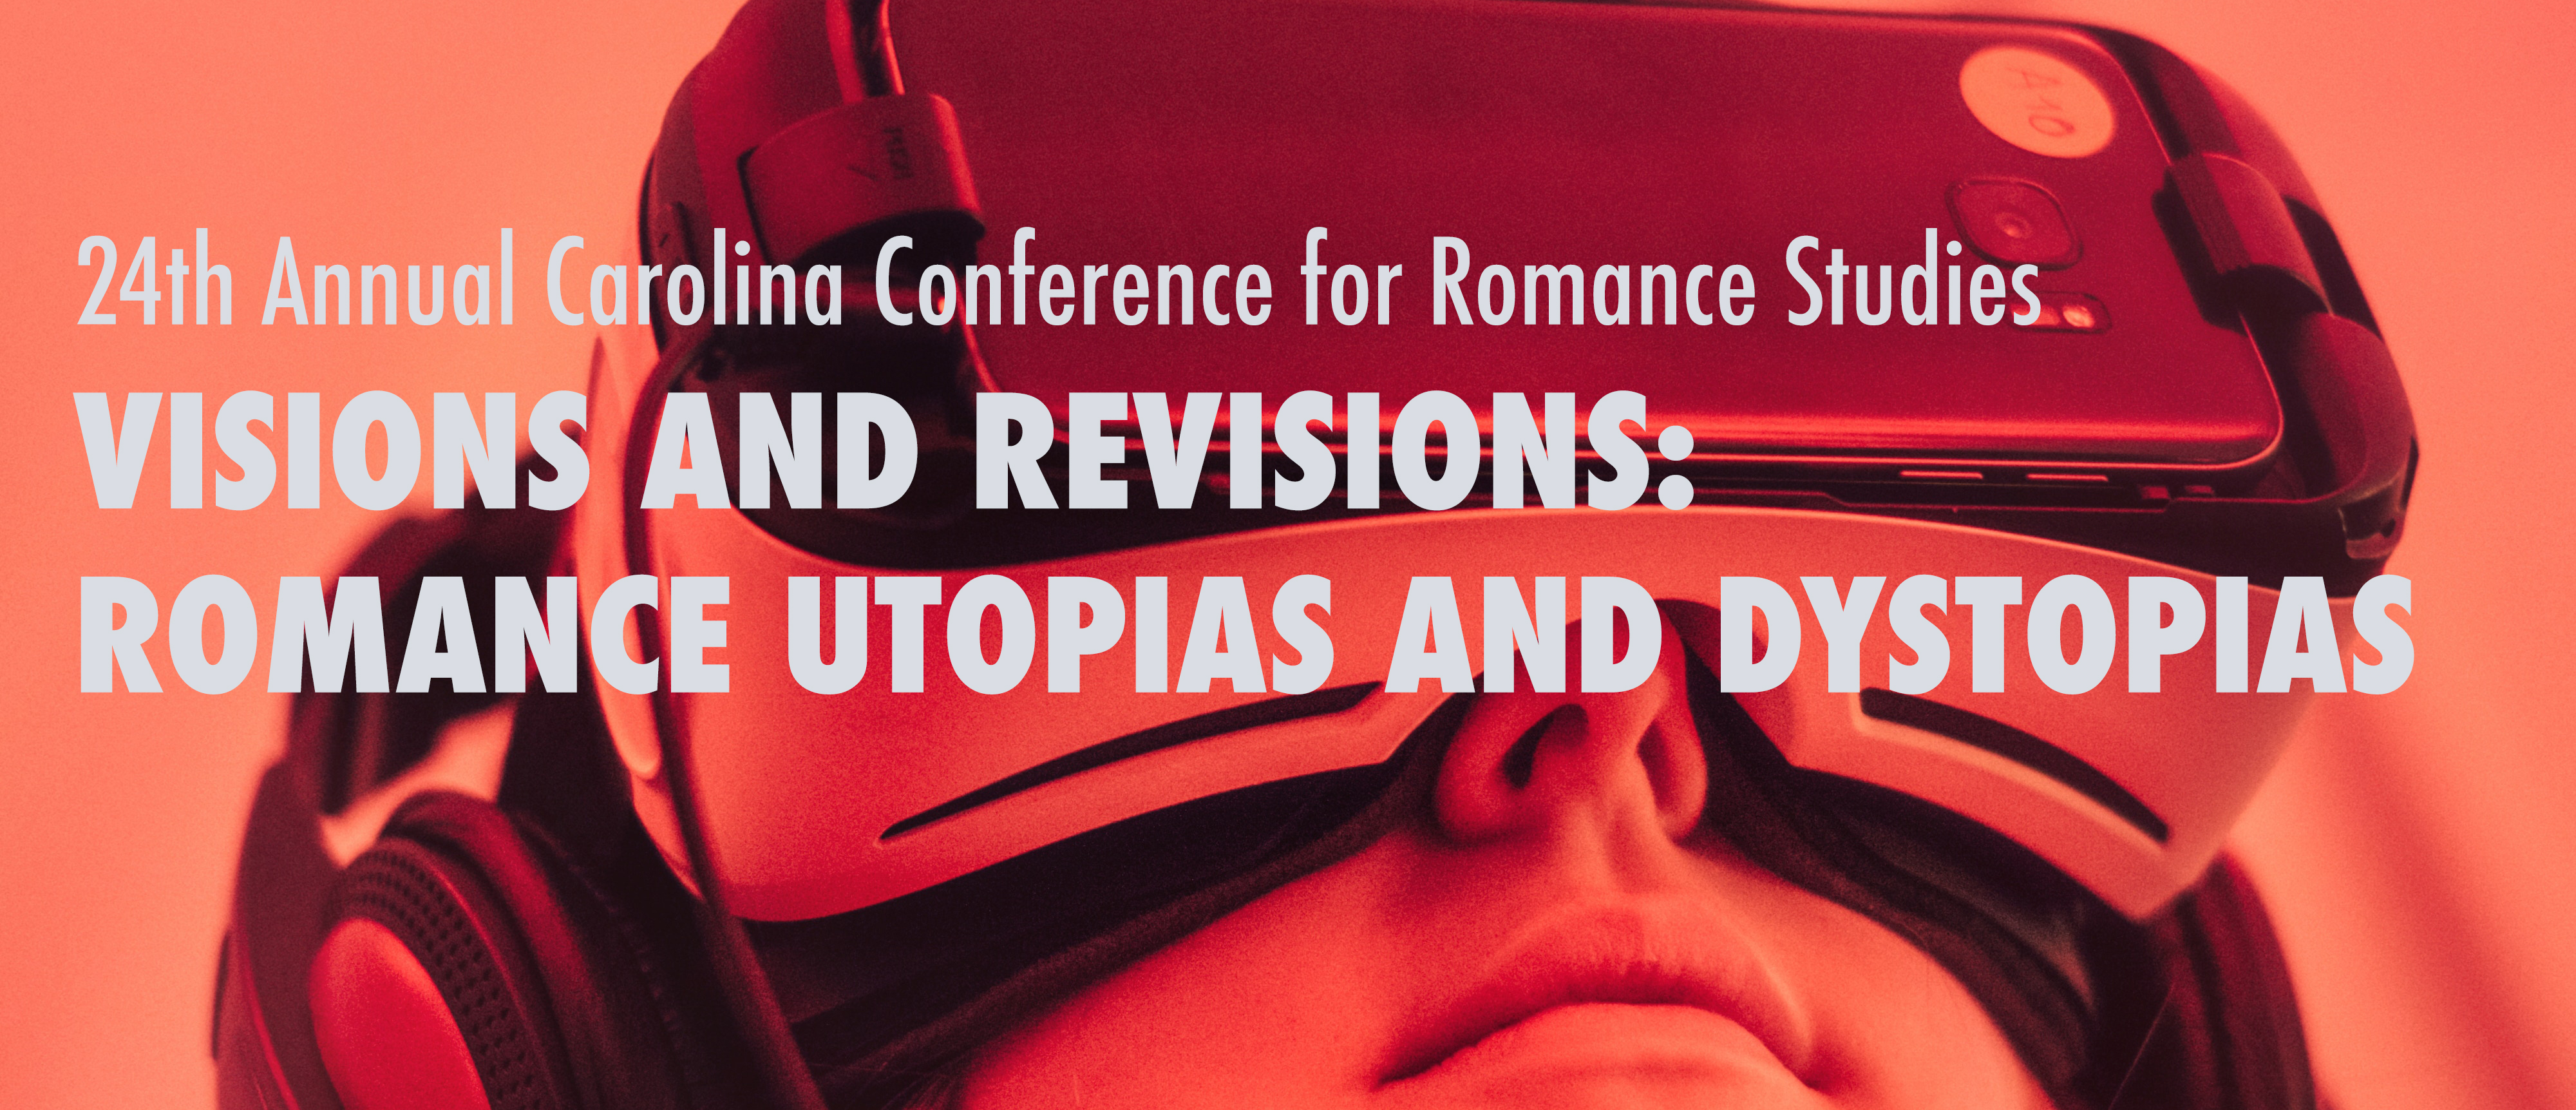 Carolina Conference for Romance Studies